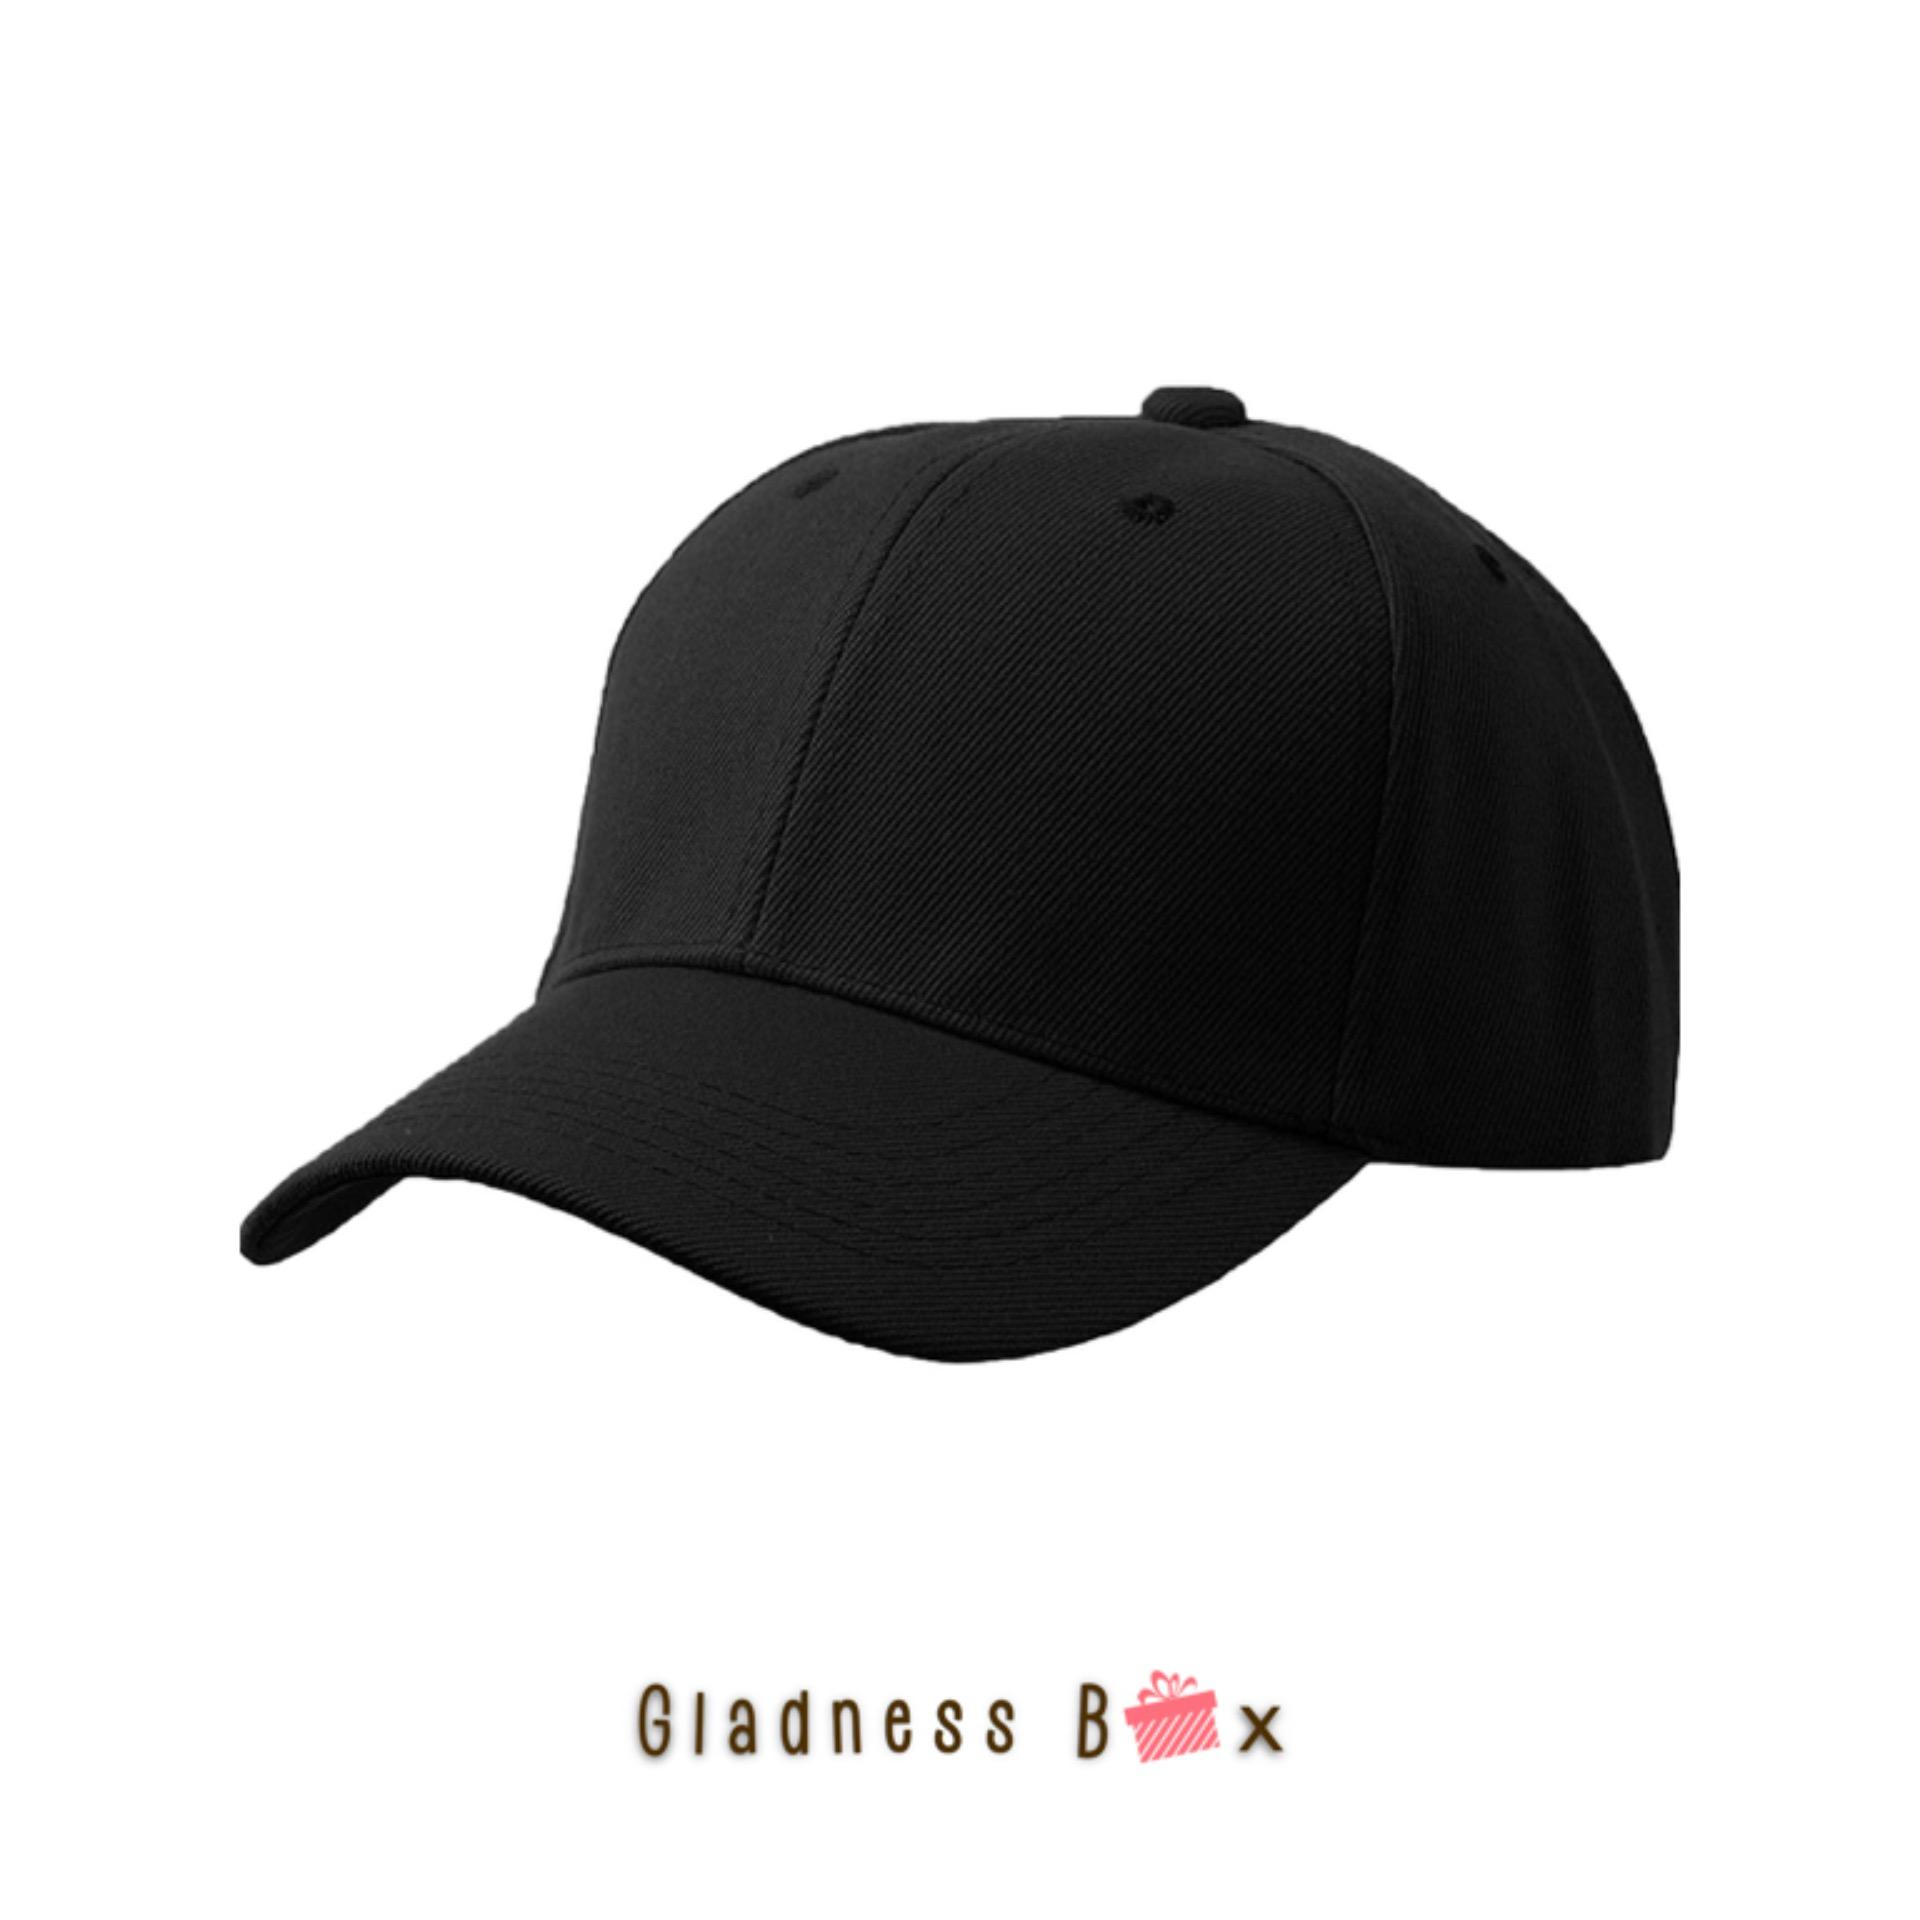 82fe7c12 Gladness Box High Quality Plain Baseball Cap for Men/Women/Unisex